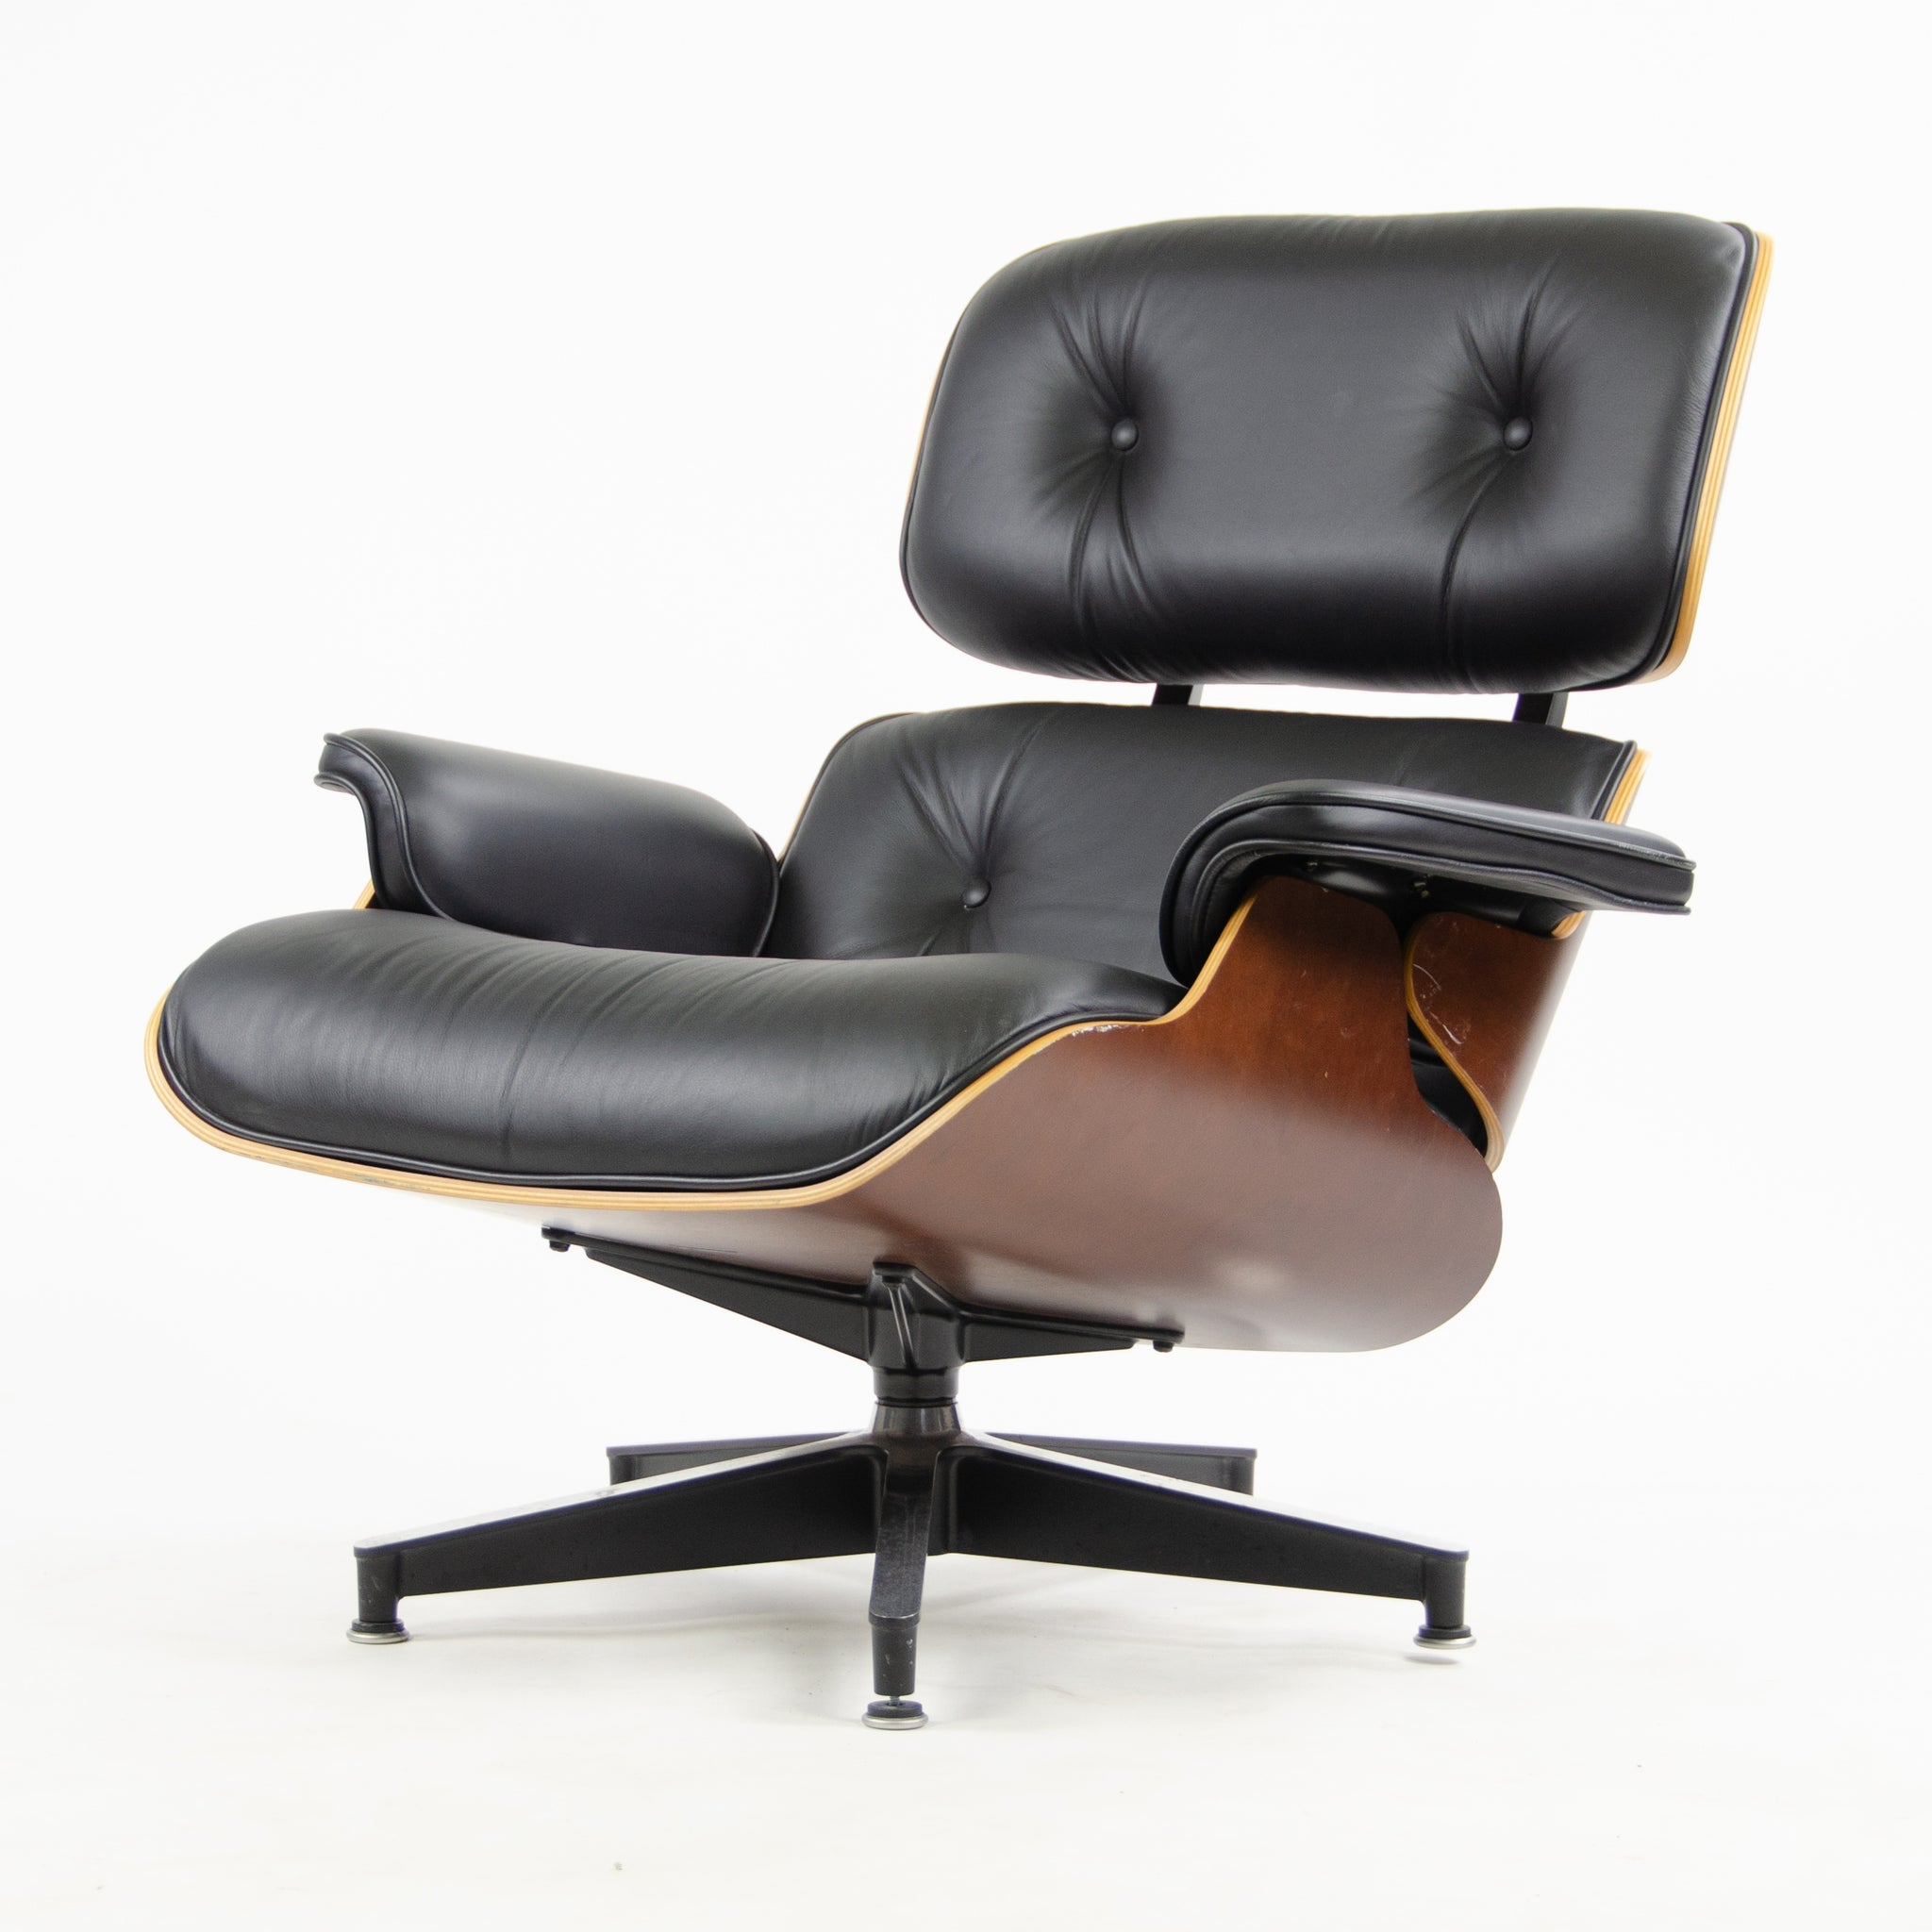 Astonishing Sold 2008 Herman Miller Eames Lounge Chair Ottoman Cherry Andrewgaddart Wooden Chair Designs For Living Room Andrewgaddartcom